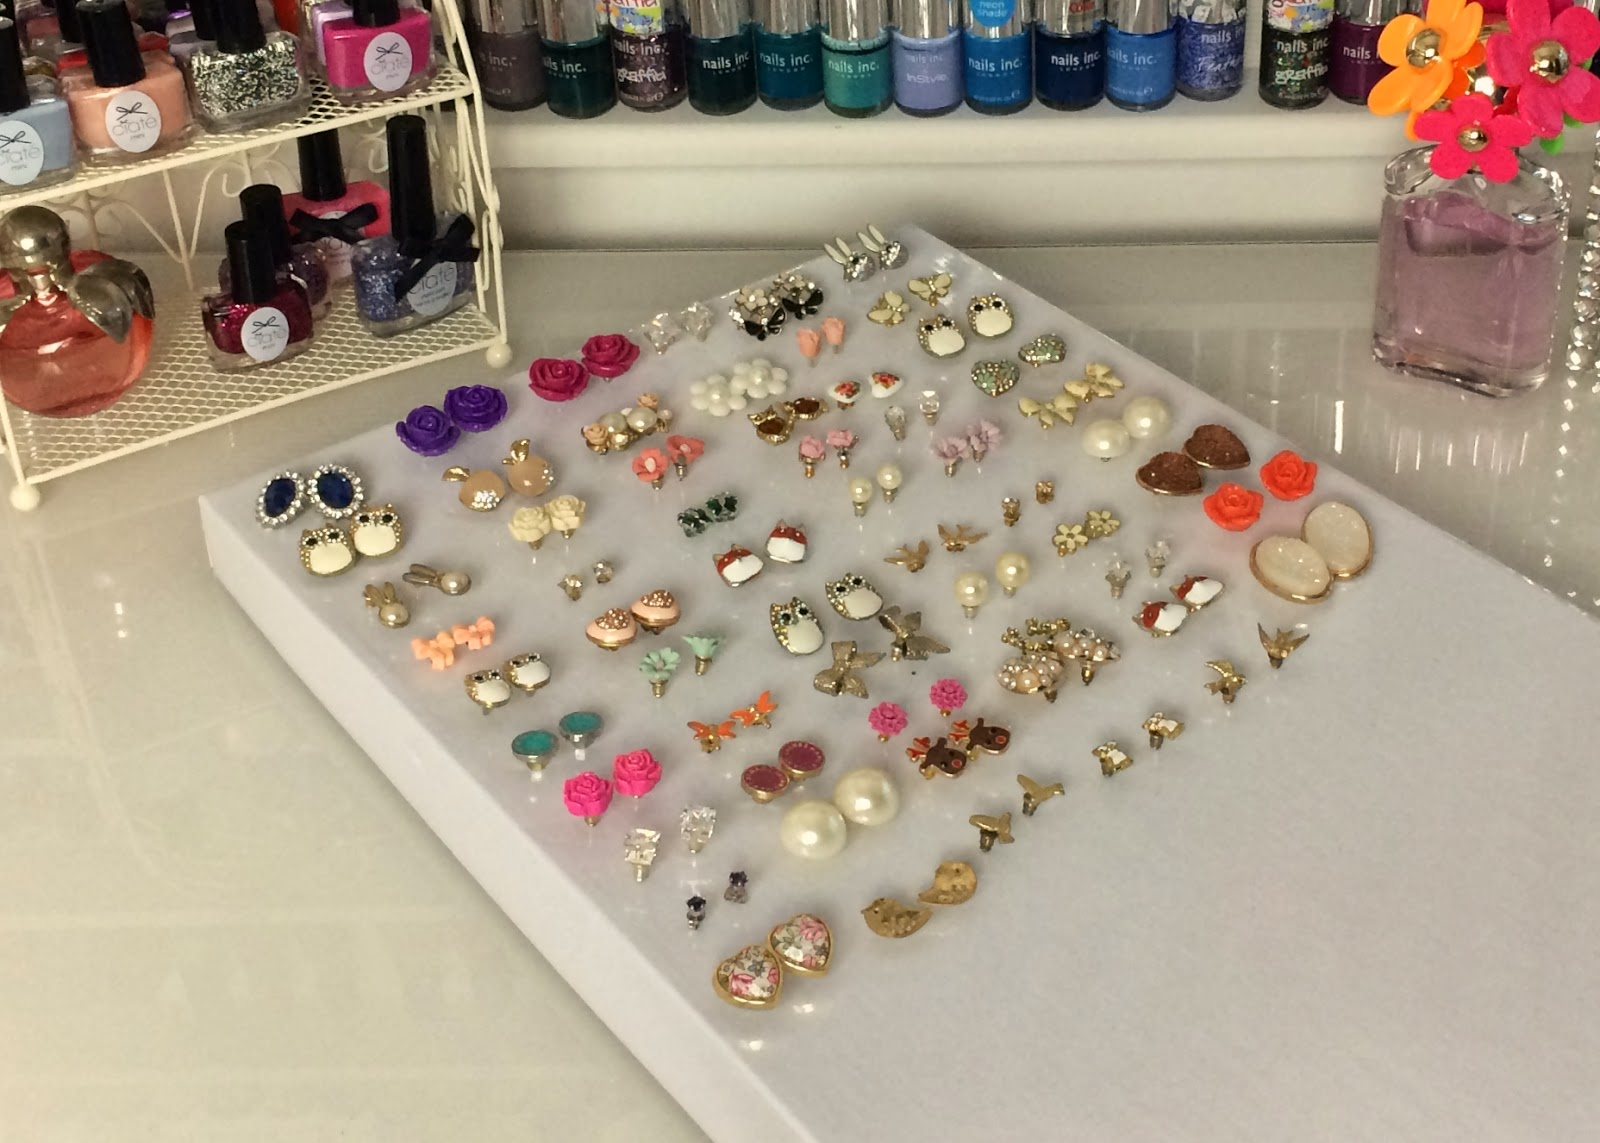 In a cheap and also creative way, you ca have a jewelry holder, by pinning the earring into a foam panel.